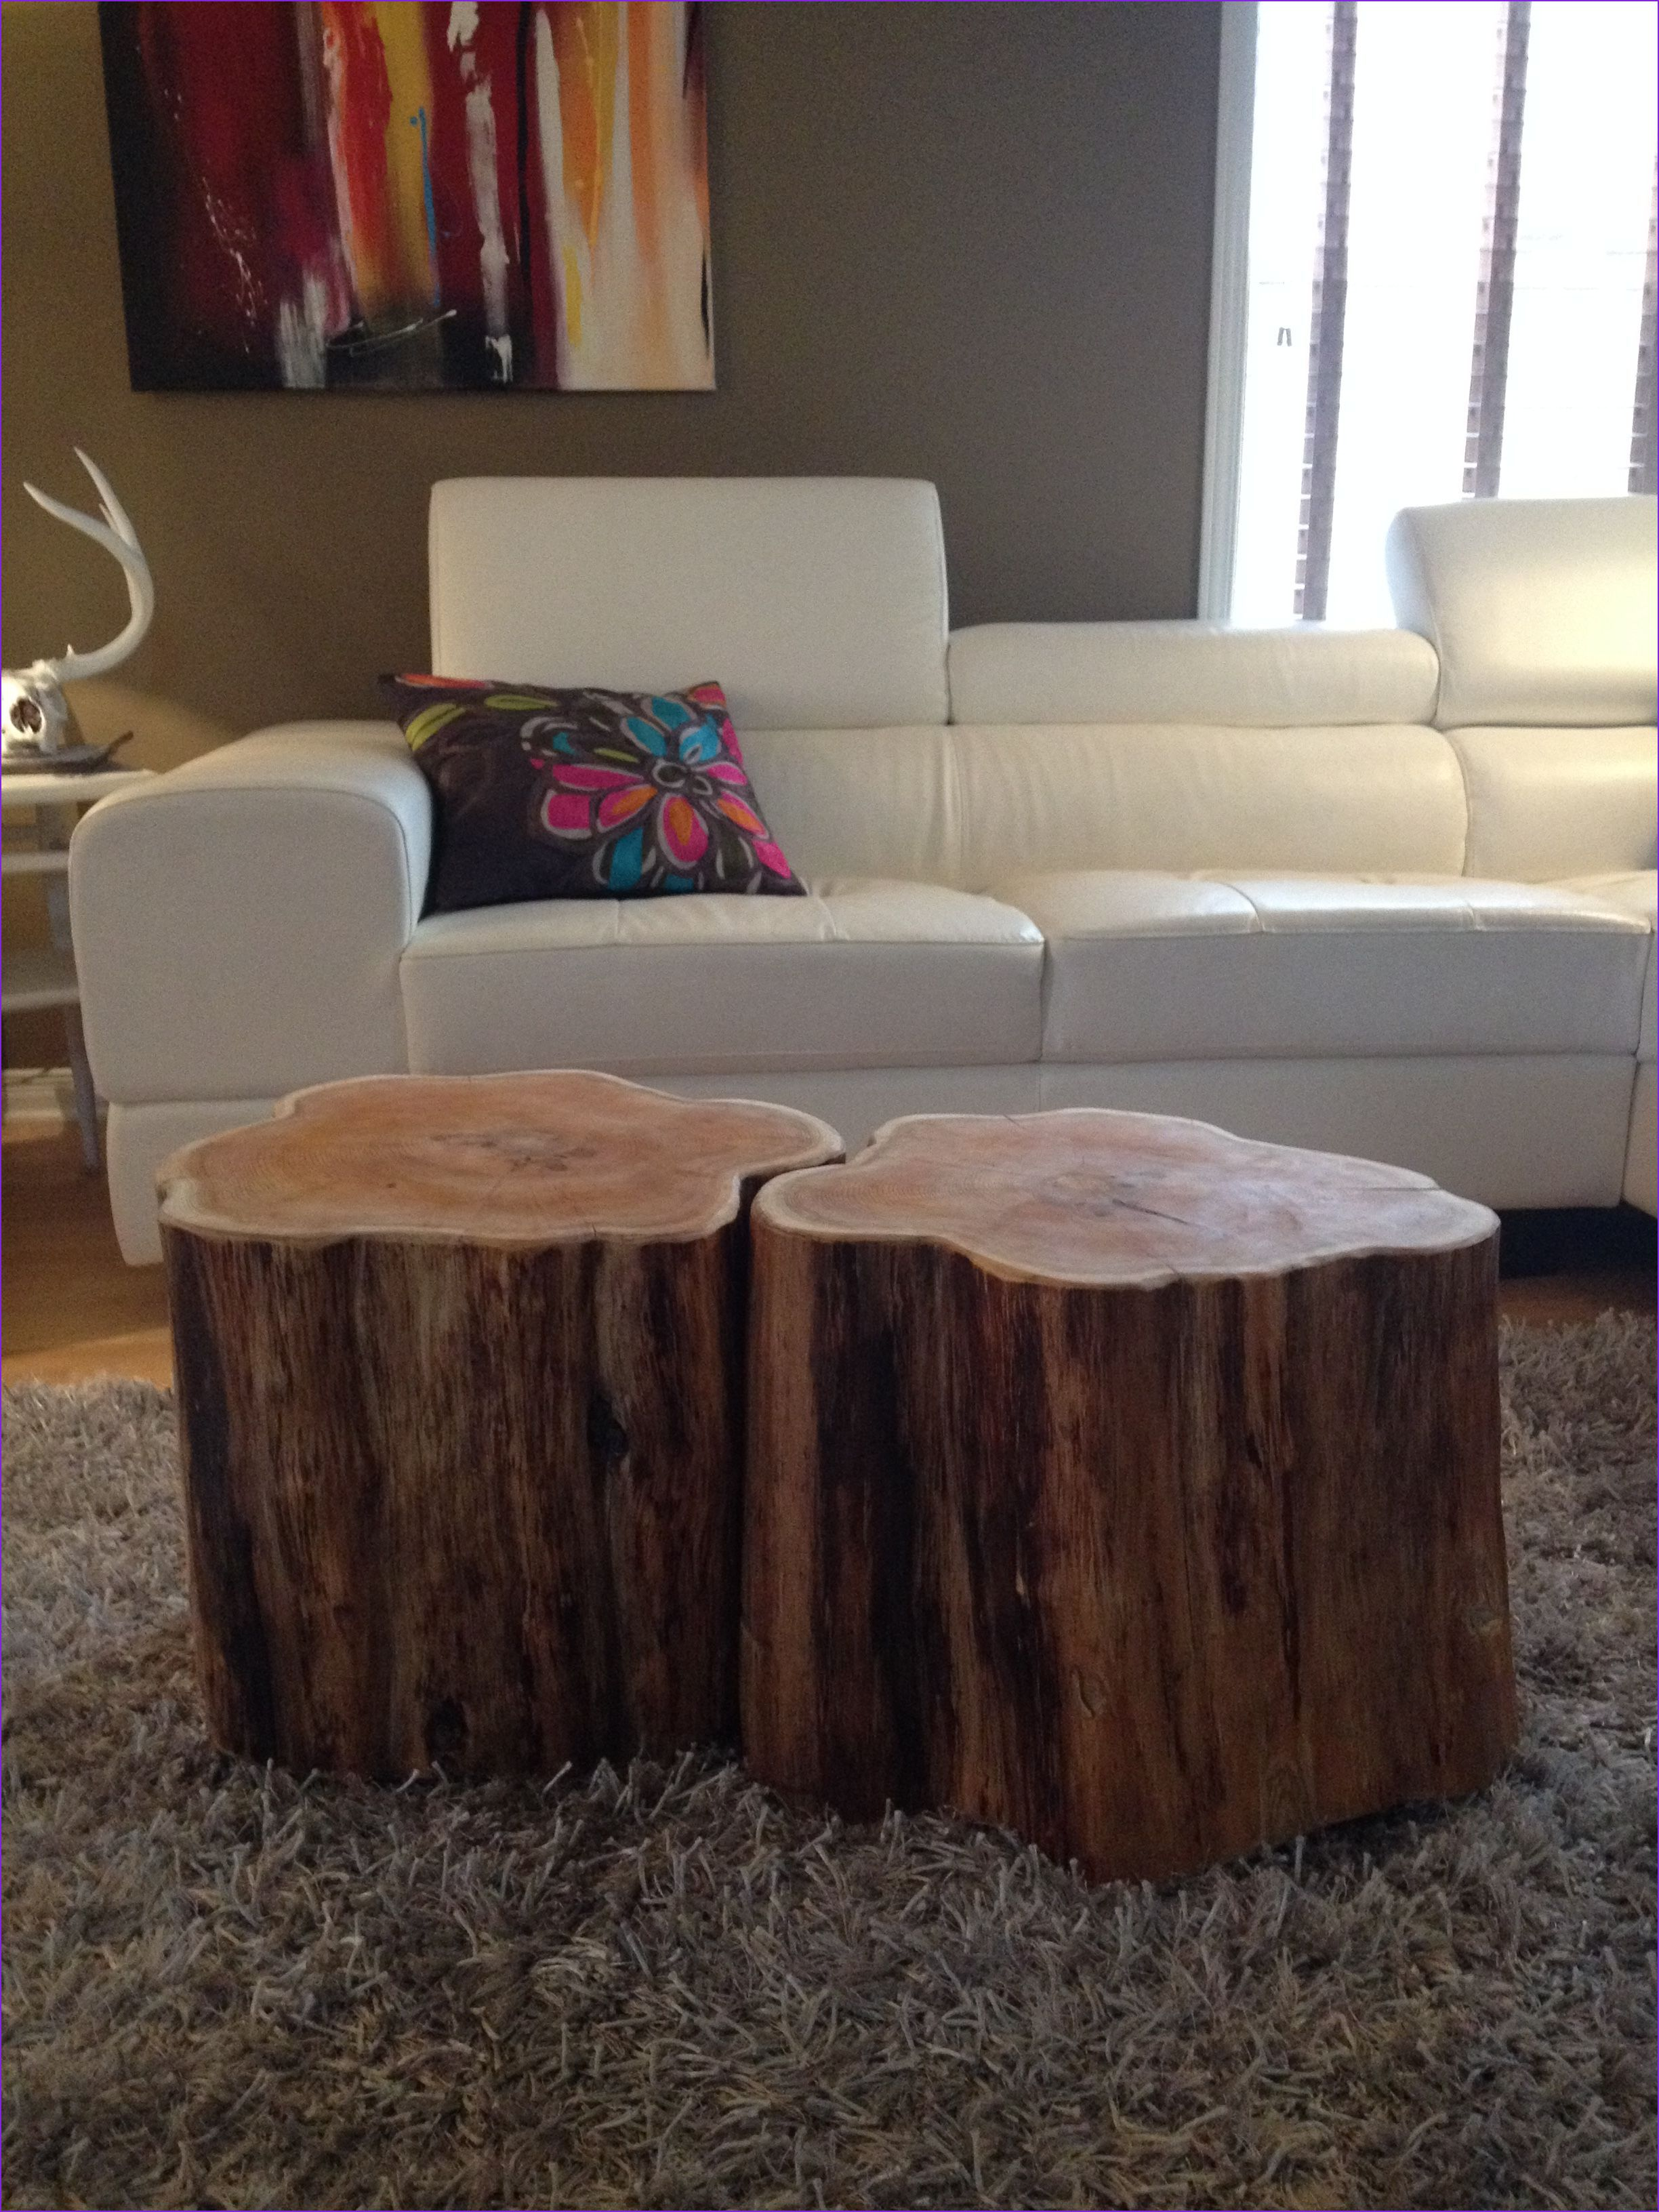 15 Best Wood For Coffee Table Gallery In 2020 Coffee Table Tree